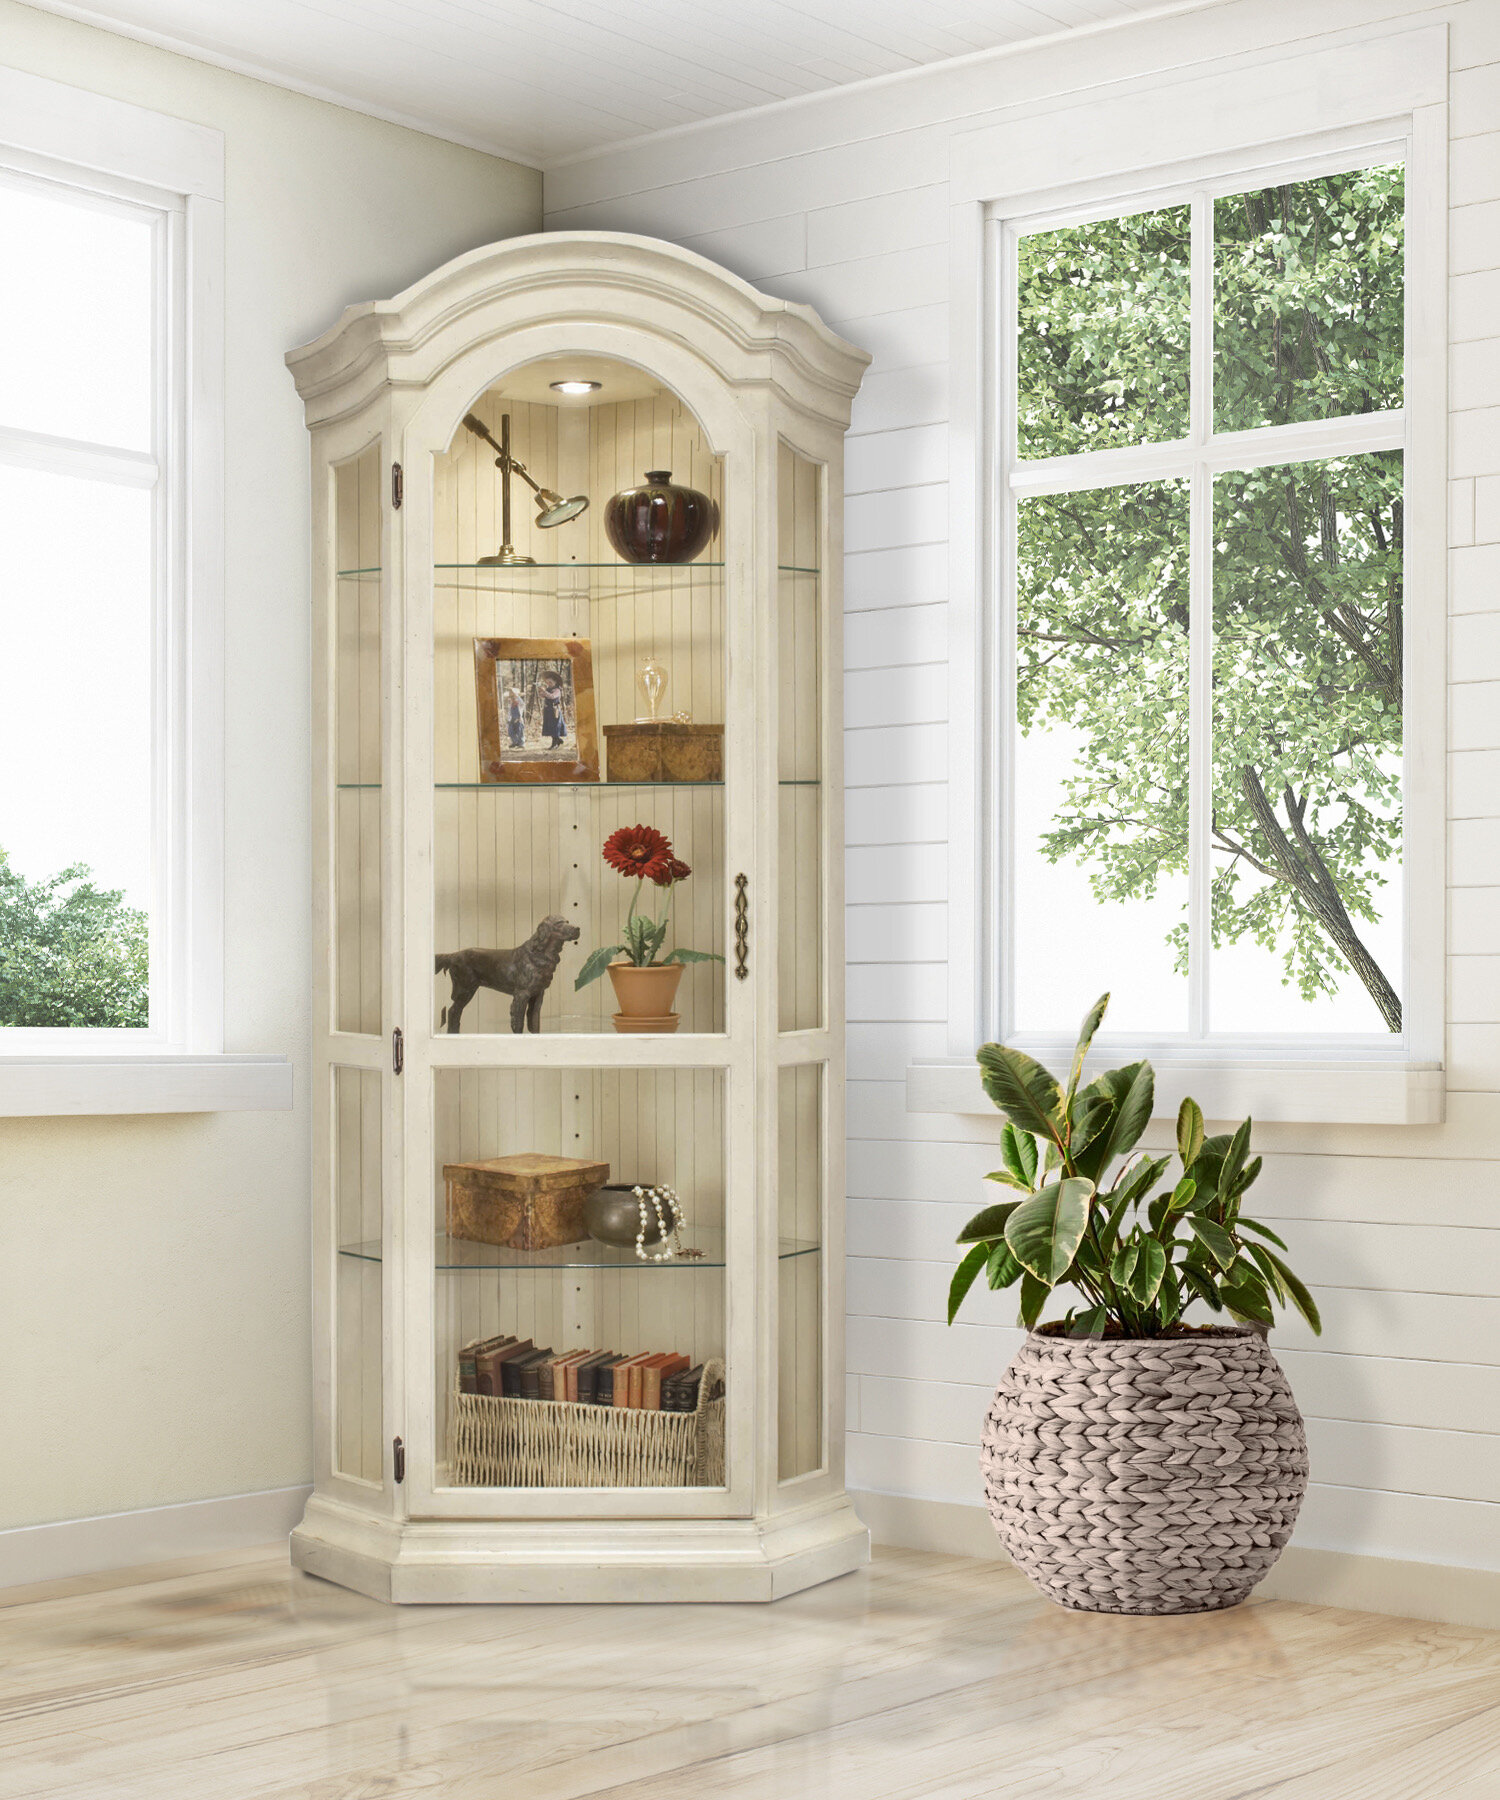 Curio Cabinets Home Chinese Wooden Curio Shelf Antique And Curio Display Stand Keepsakes Or Plant Shelving Unit